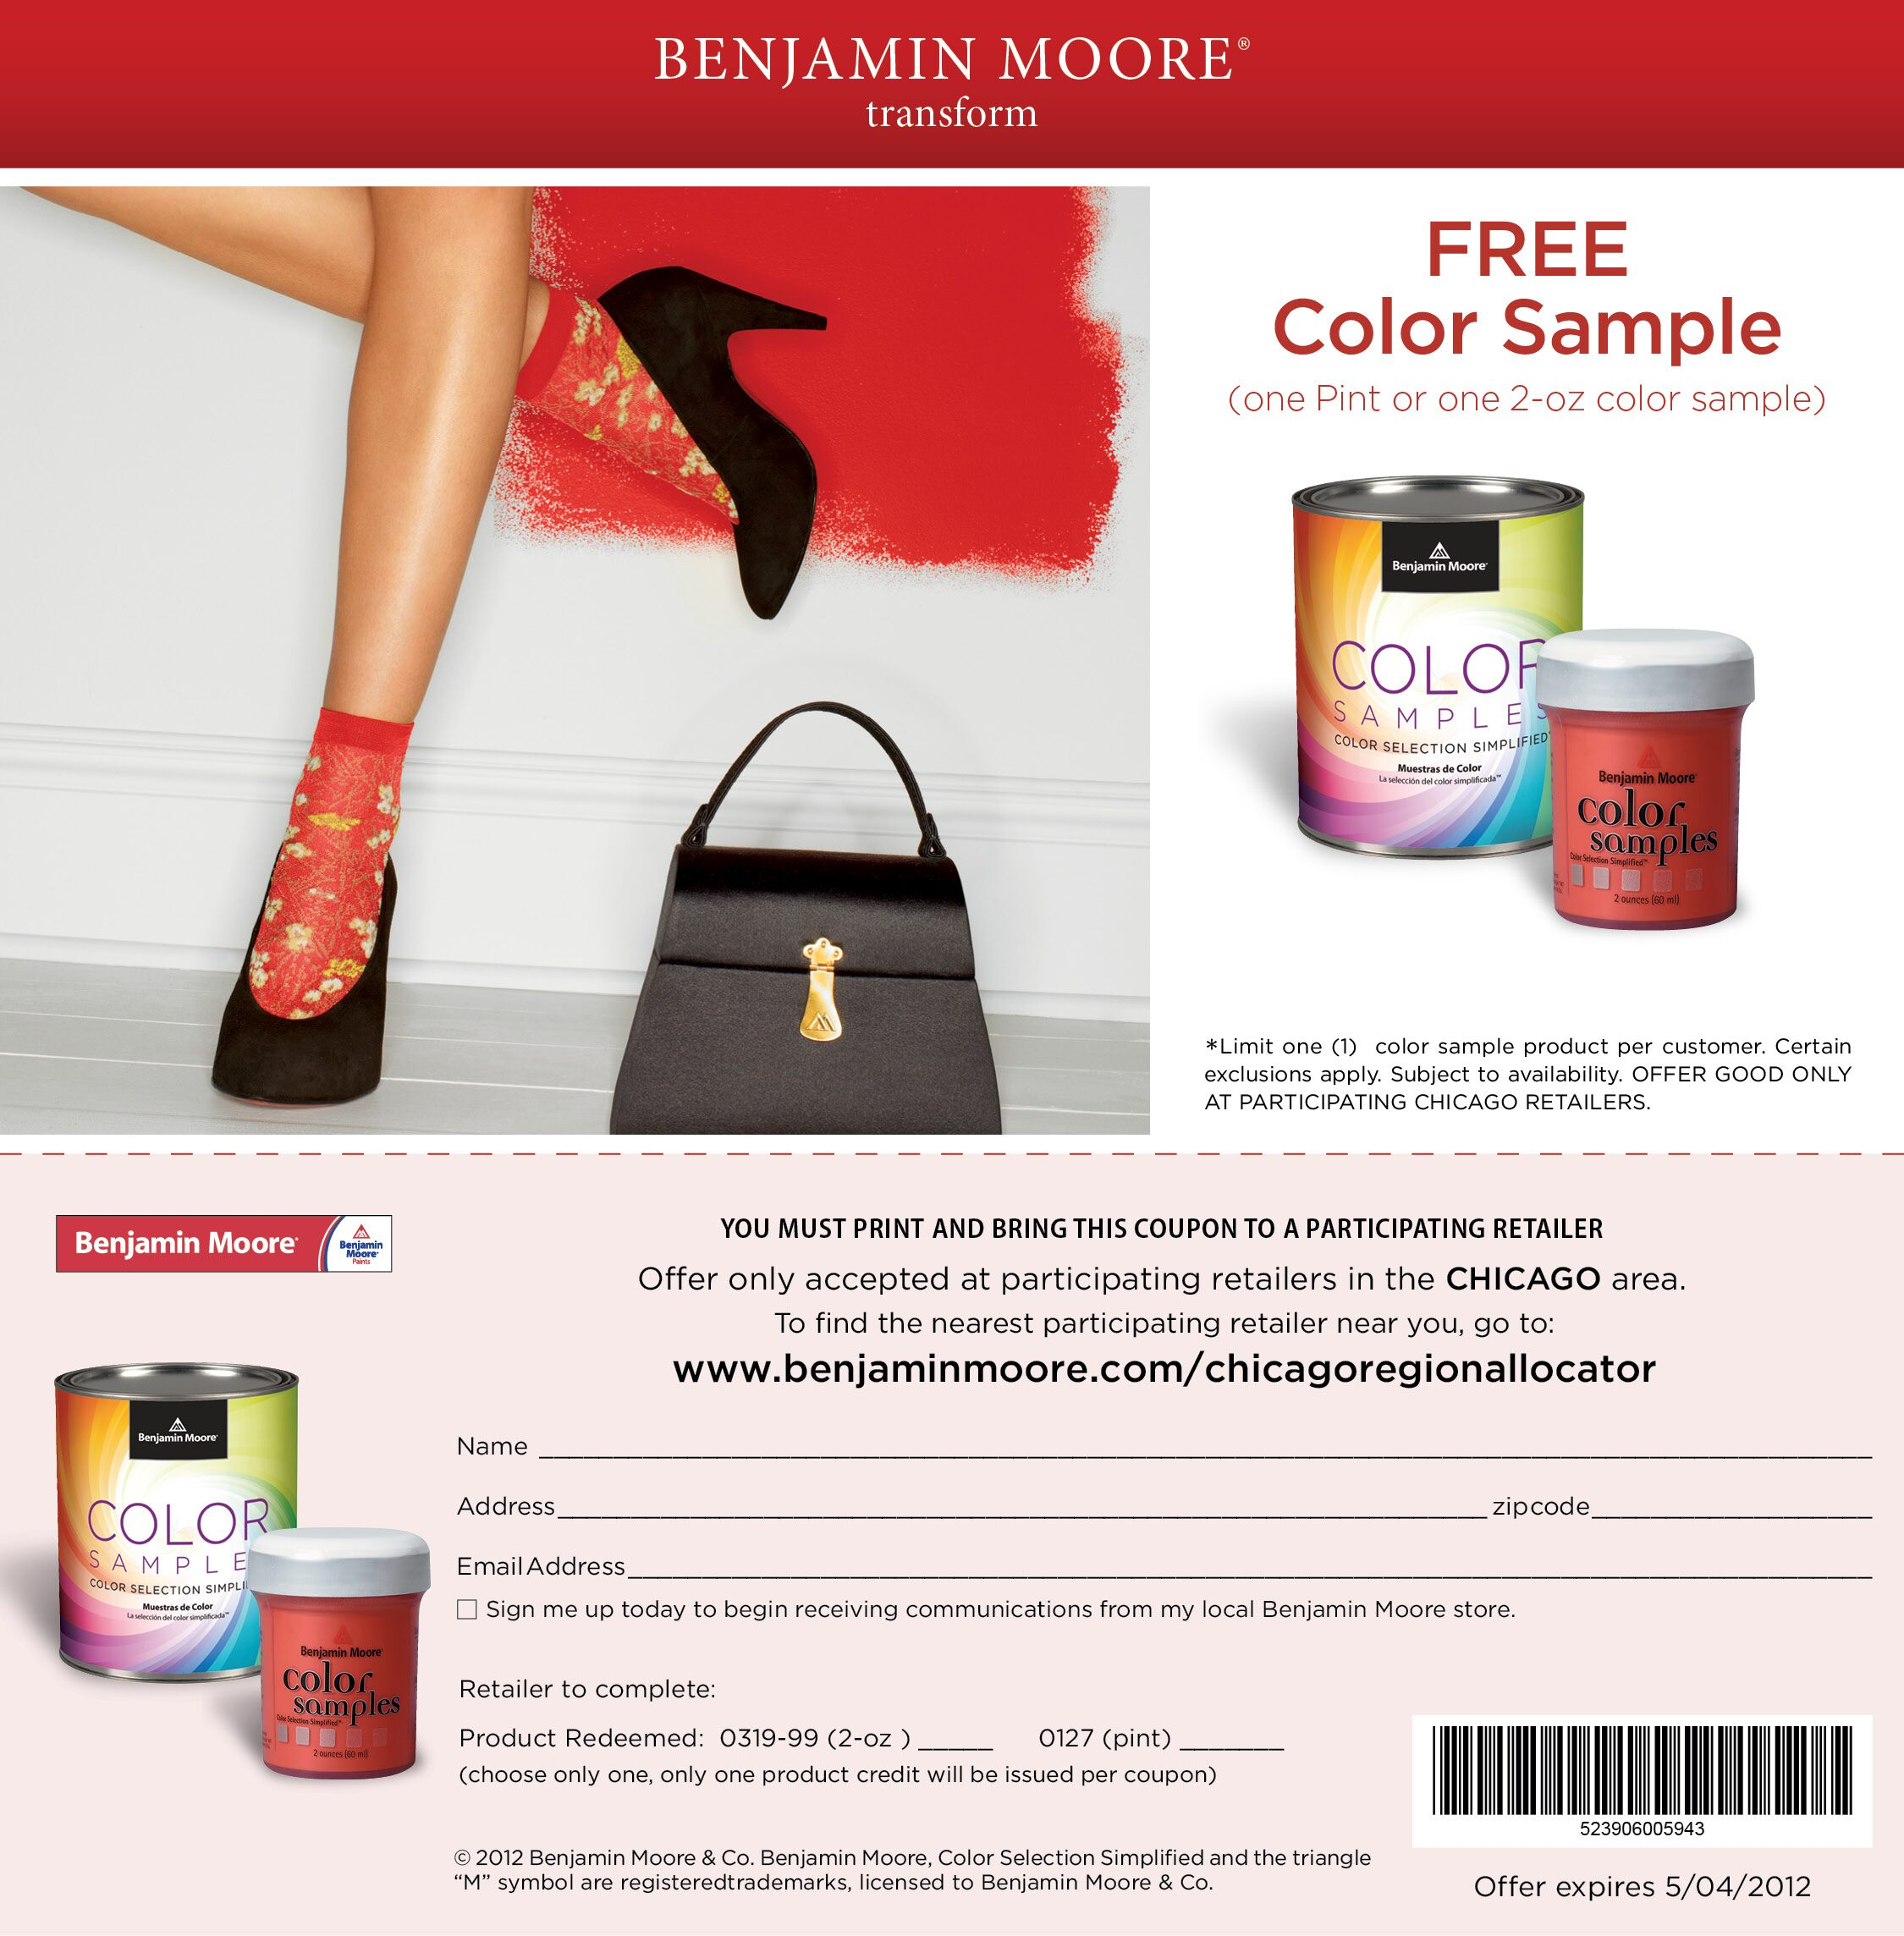 photograph regarding Benjamin Moore Paint Coupons Printable identify Absolutely free Benjamin Moore Pint Shade Pattern For Chicago Inhabitants